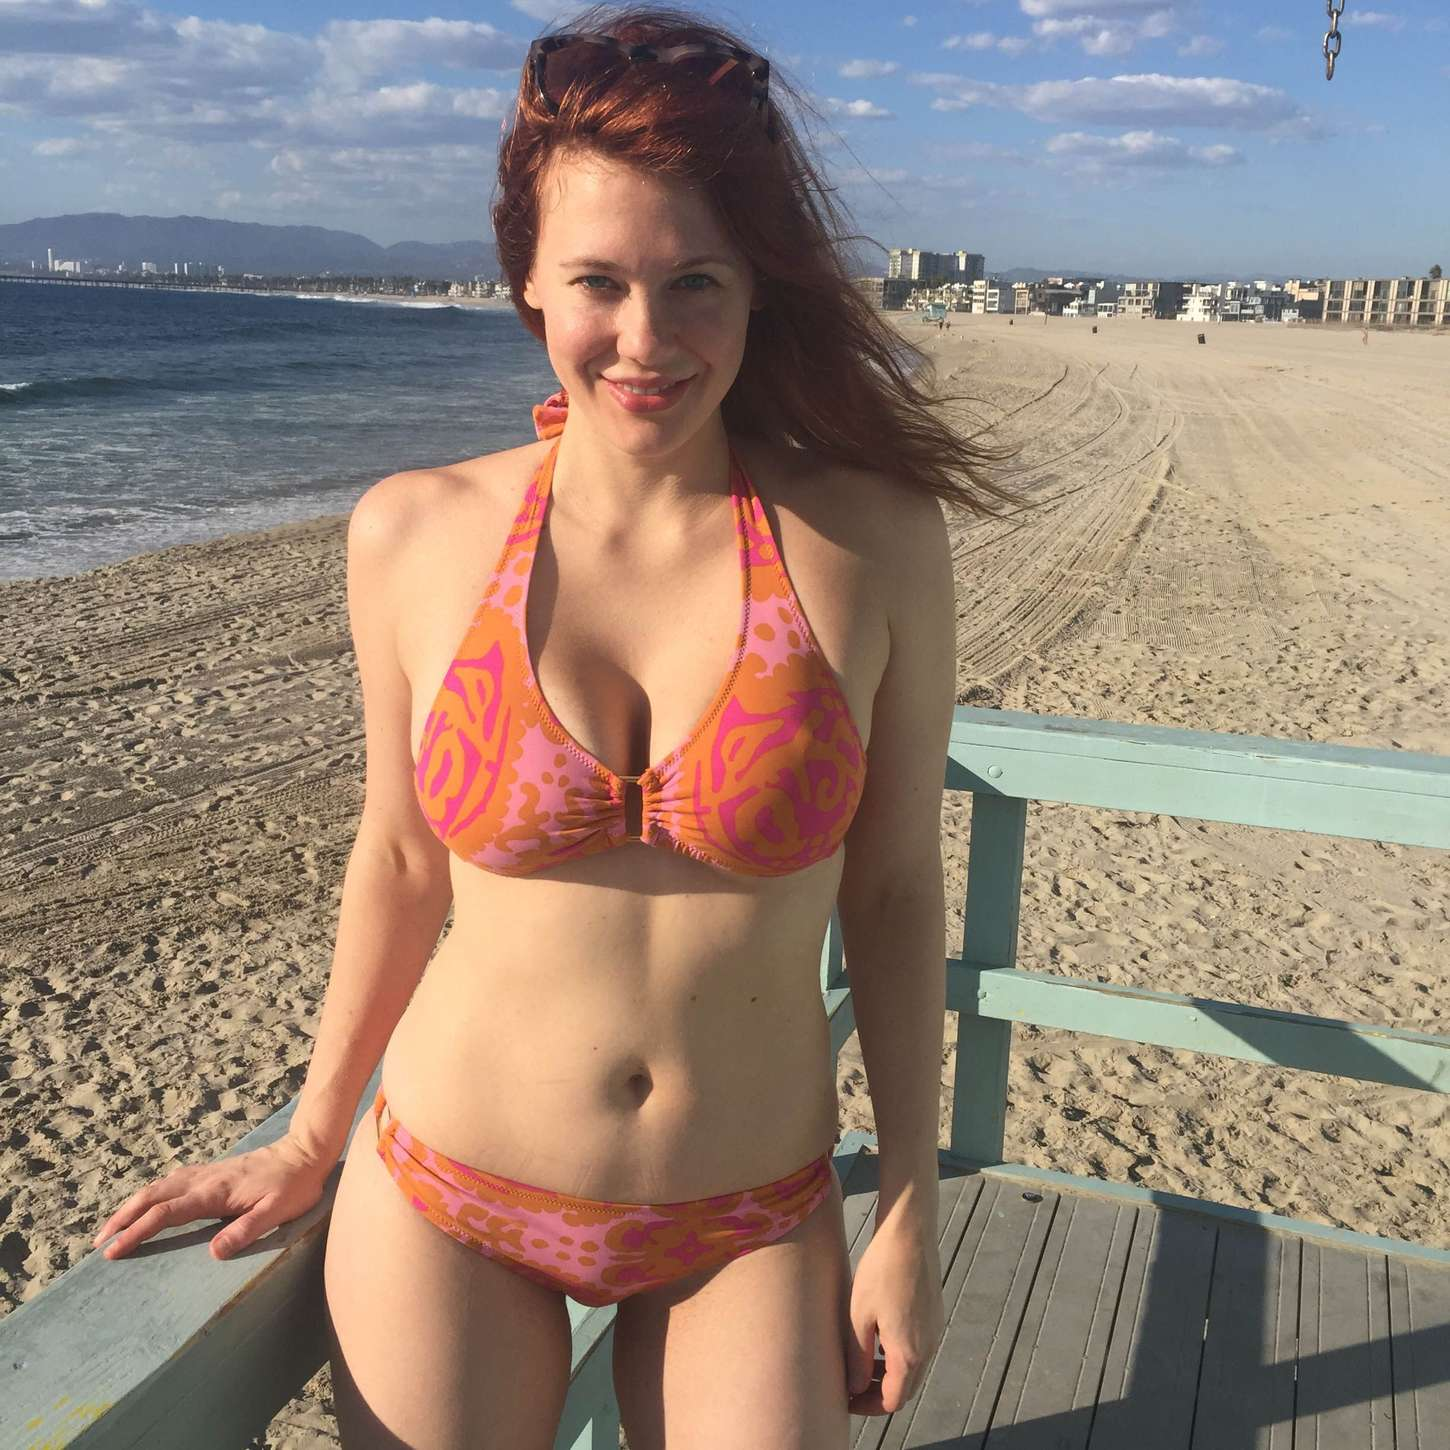 Maitland Ward Wearing a bikini at a beach in Marina Del Rey